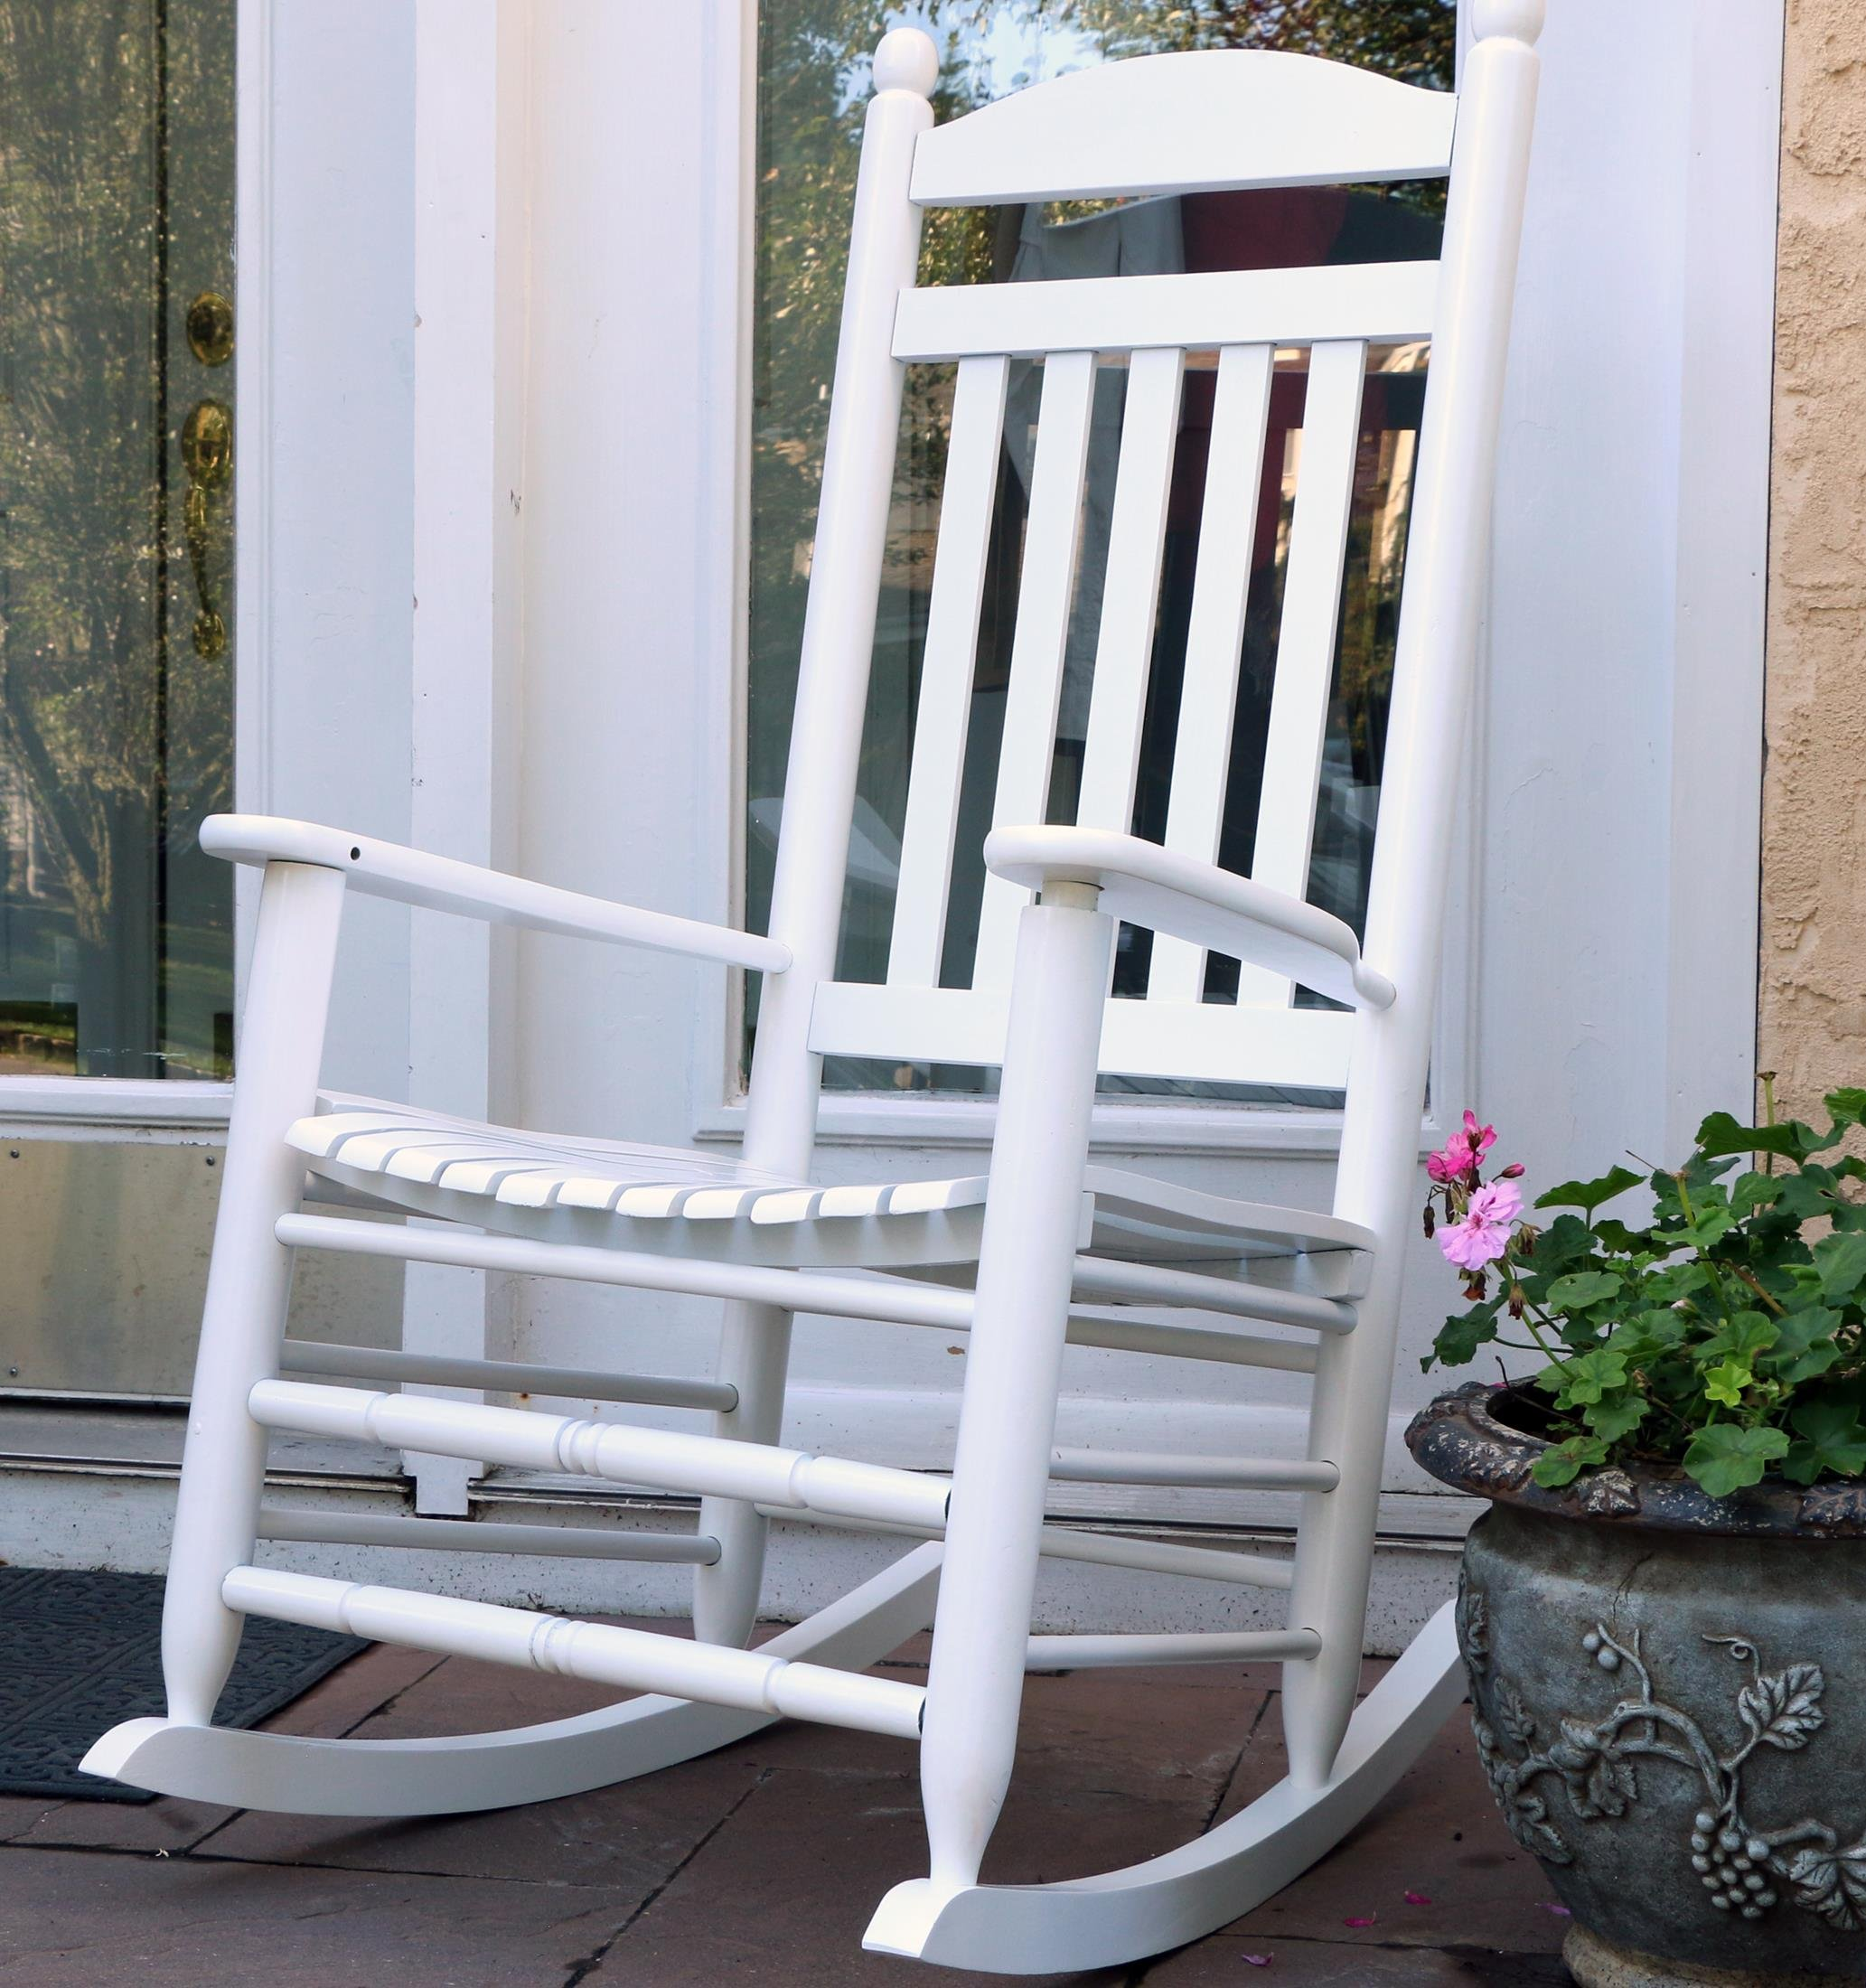 LIFE Home Oliver and Smith - Nashville Collection - Heavy Duty Wooden White Patio Porch Rocker- Rocking Chair - Made in USA - 26'' W x 34'' D x 47'' H - 400 LBS